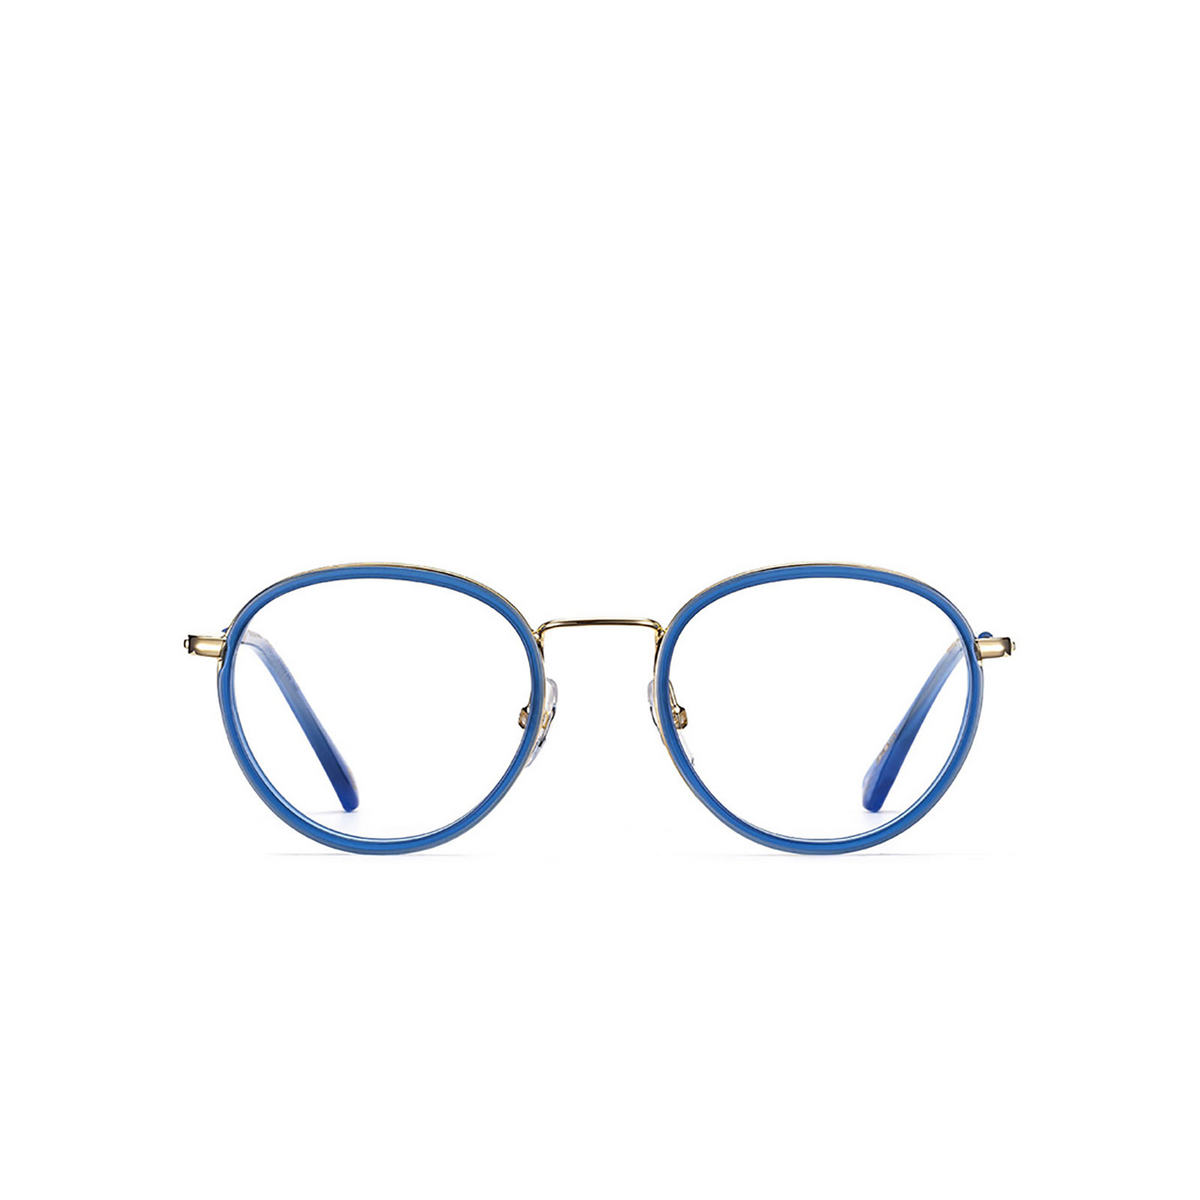 Etnia Barcelona® Round Eyeglasses: Little Italy color Gdbl - front view.